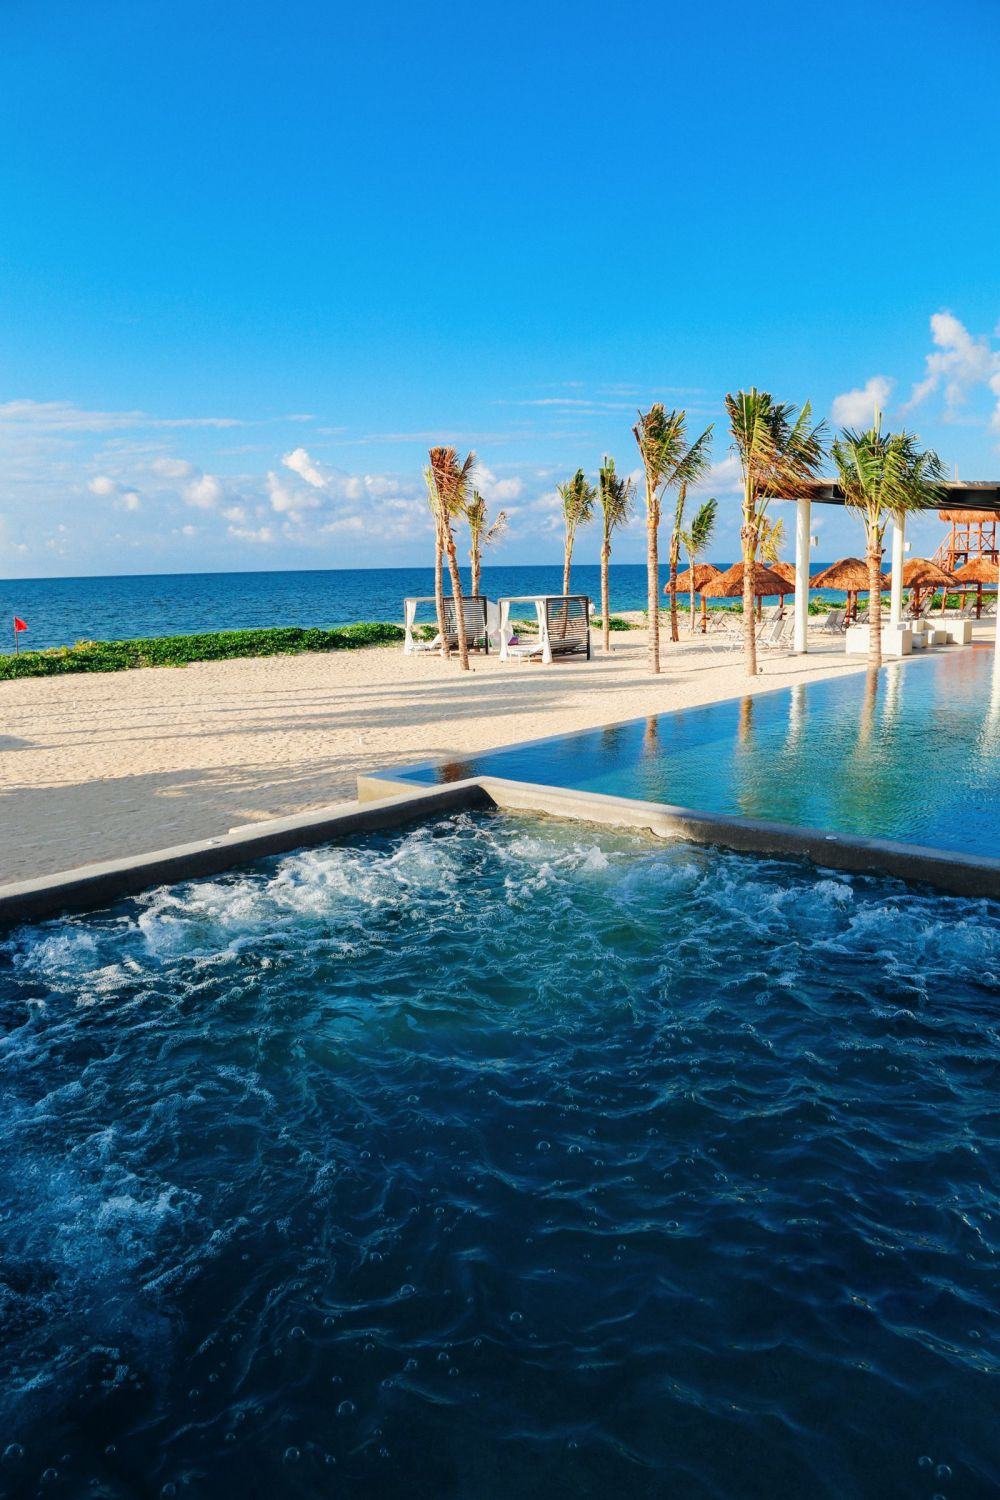 9 Things To Do When You Visit Cancun In Mexico That Don't Involve Partying (36)